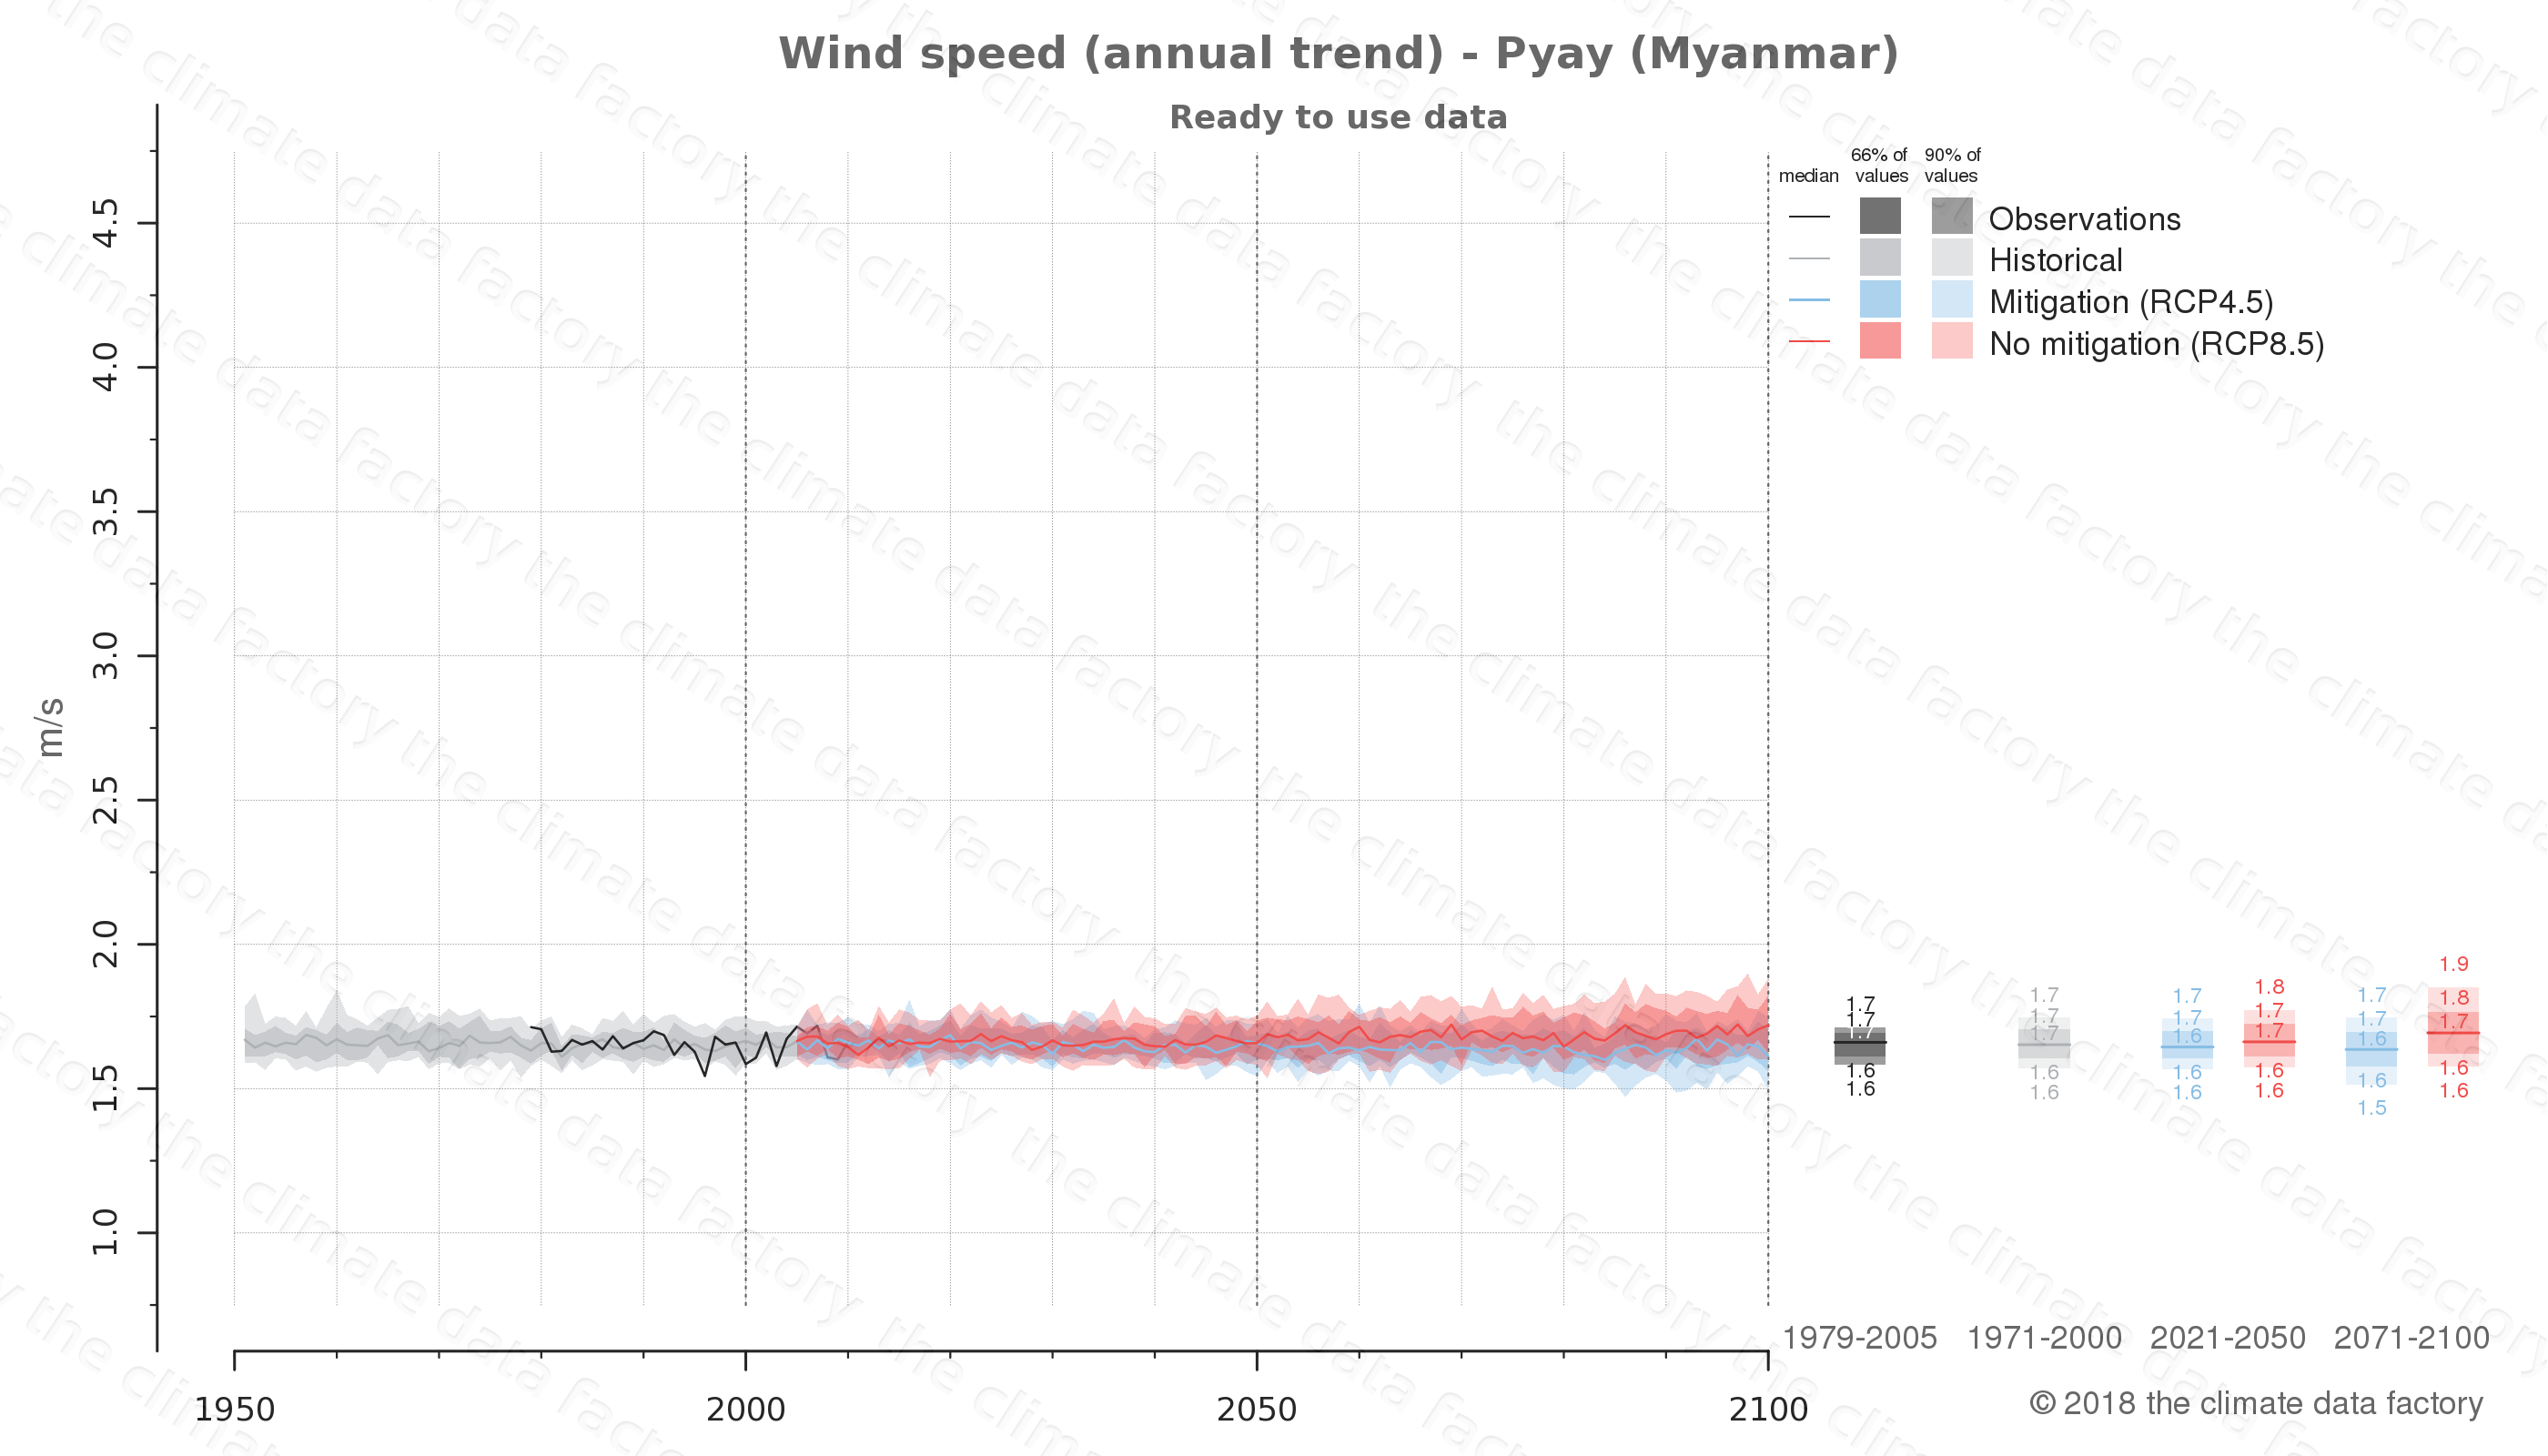 climate change data policy adaptation climate graph city data wind-speed pyay myanmar